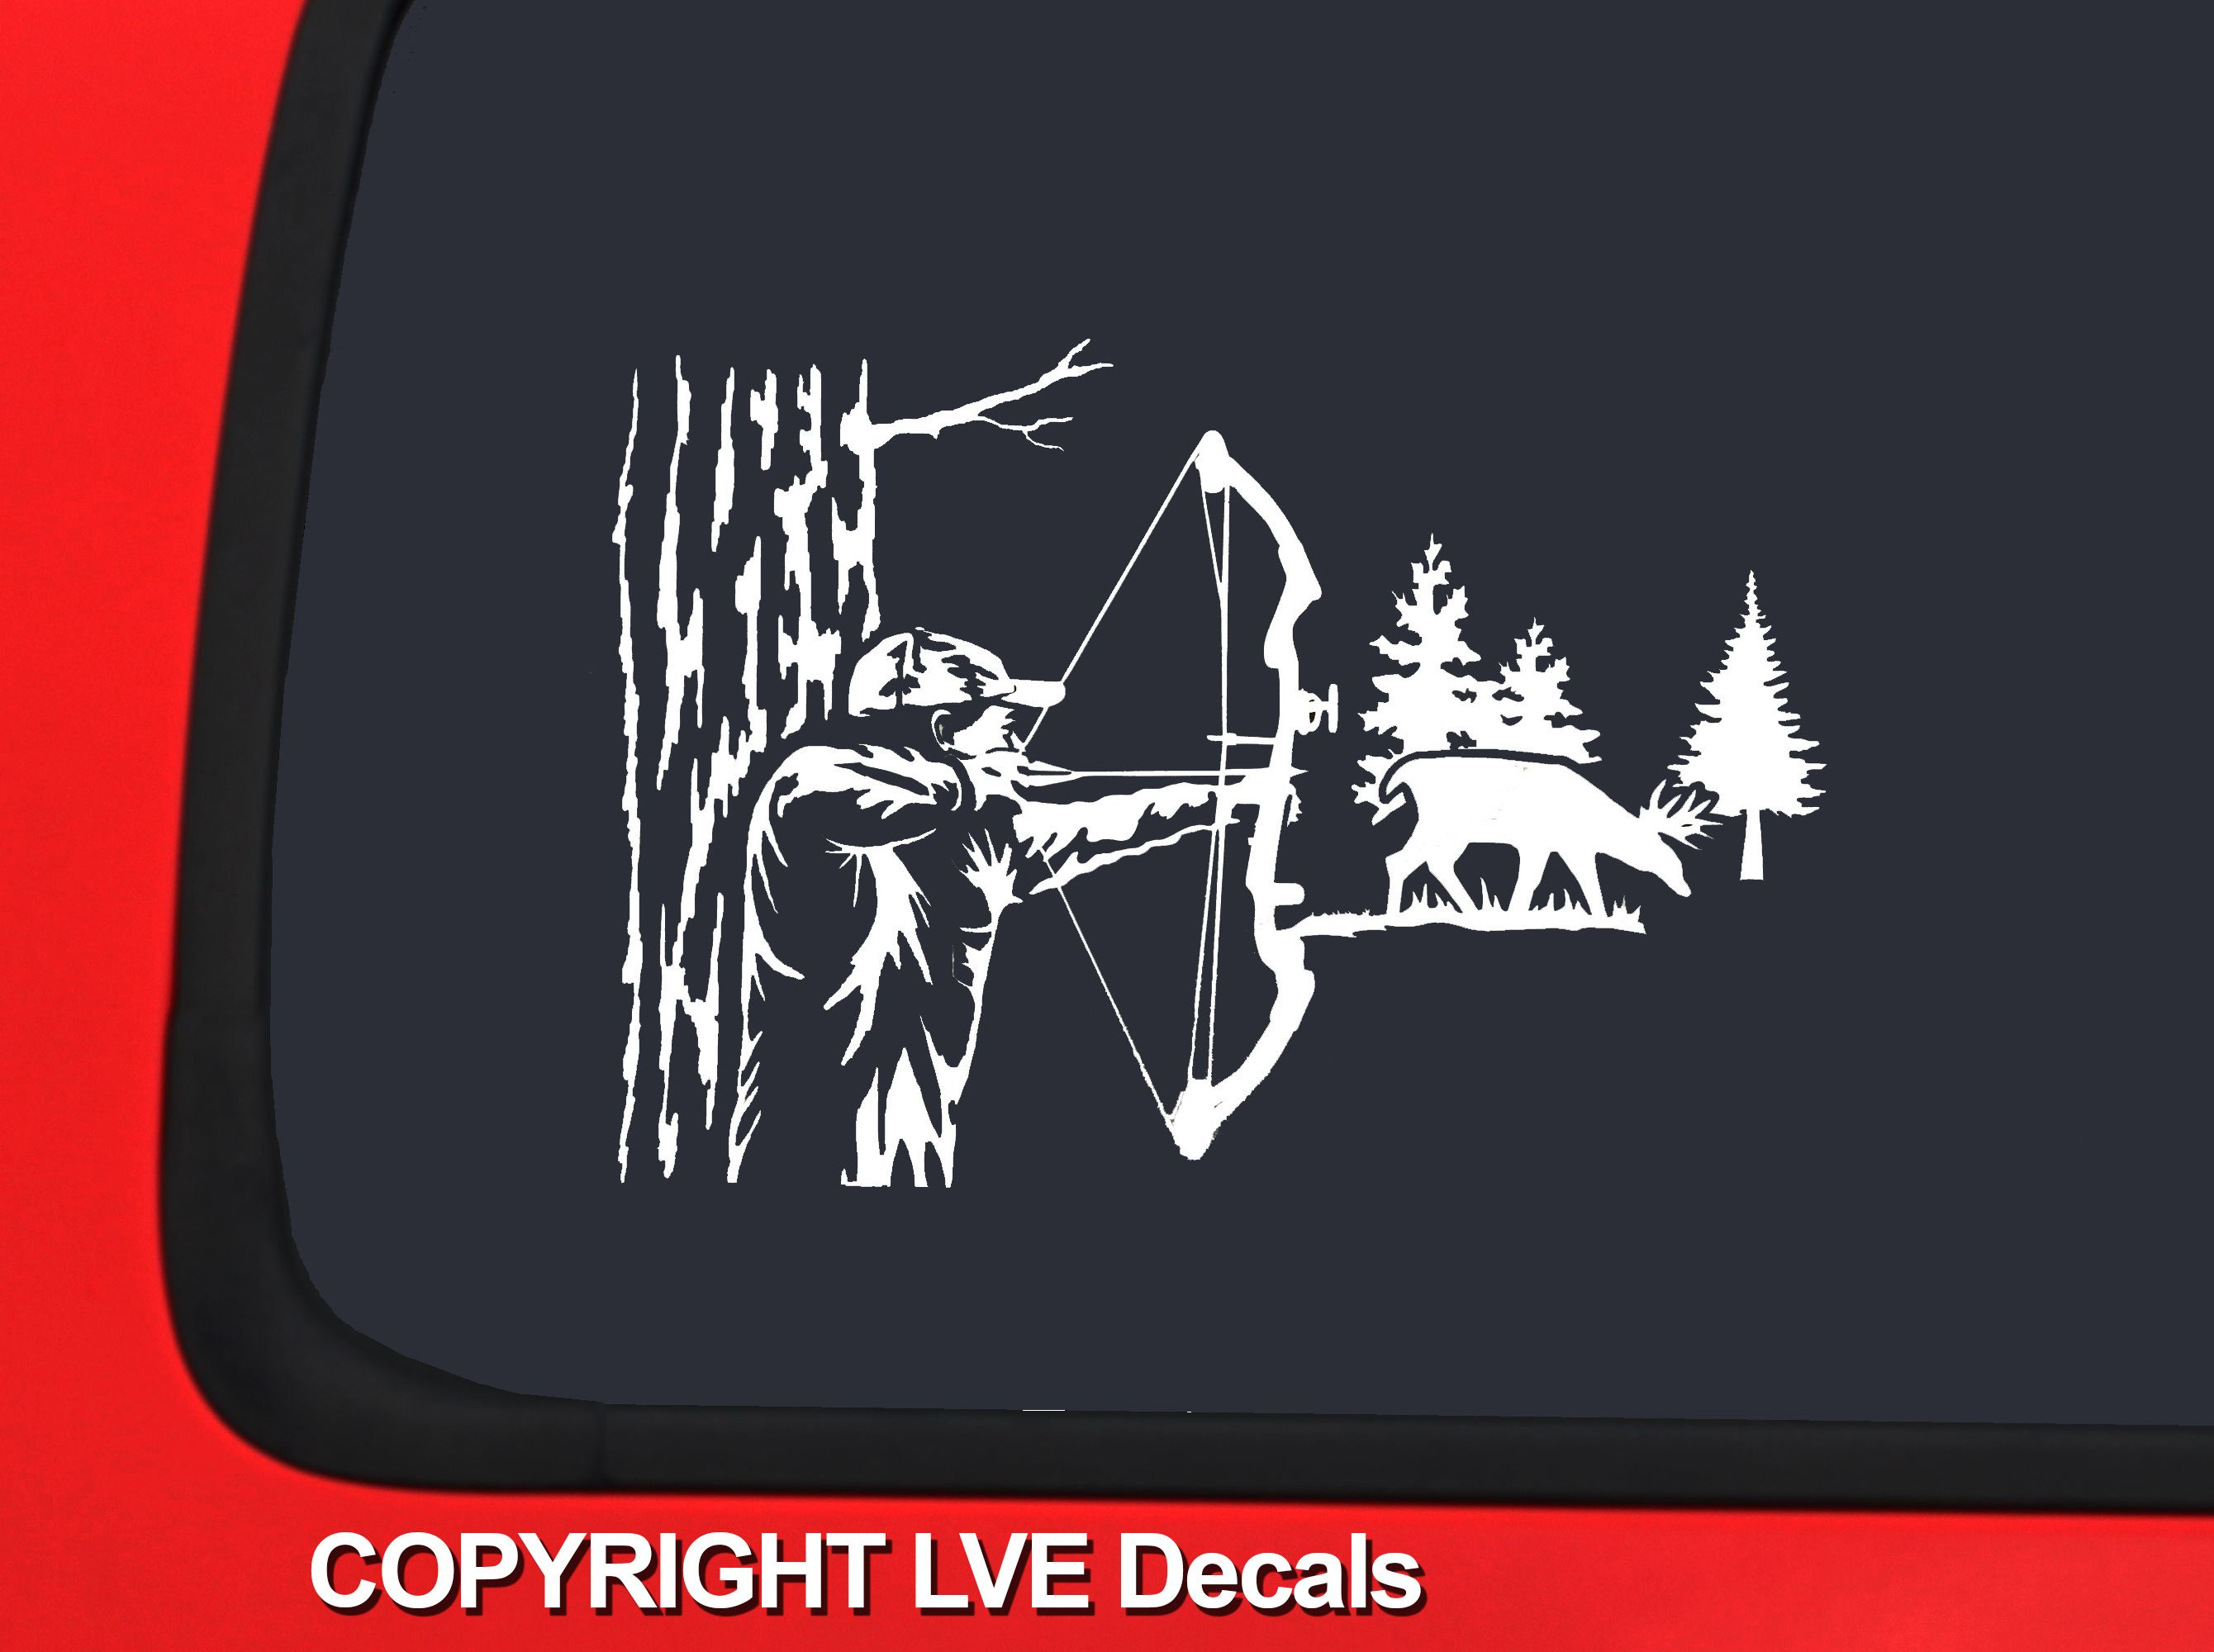 Bow Hunter Google Search Deer Hunting Silhouettes Vectors - Hunting decals for truckshuntingfishing window decals in white or camouflage at woods